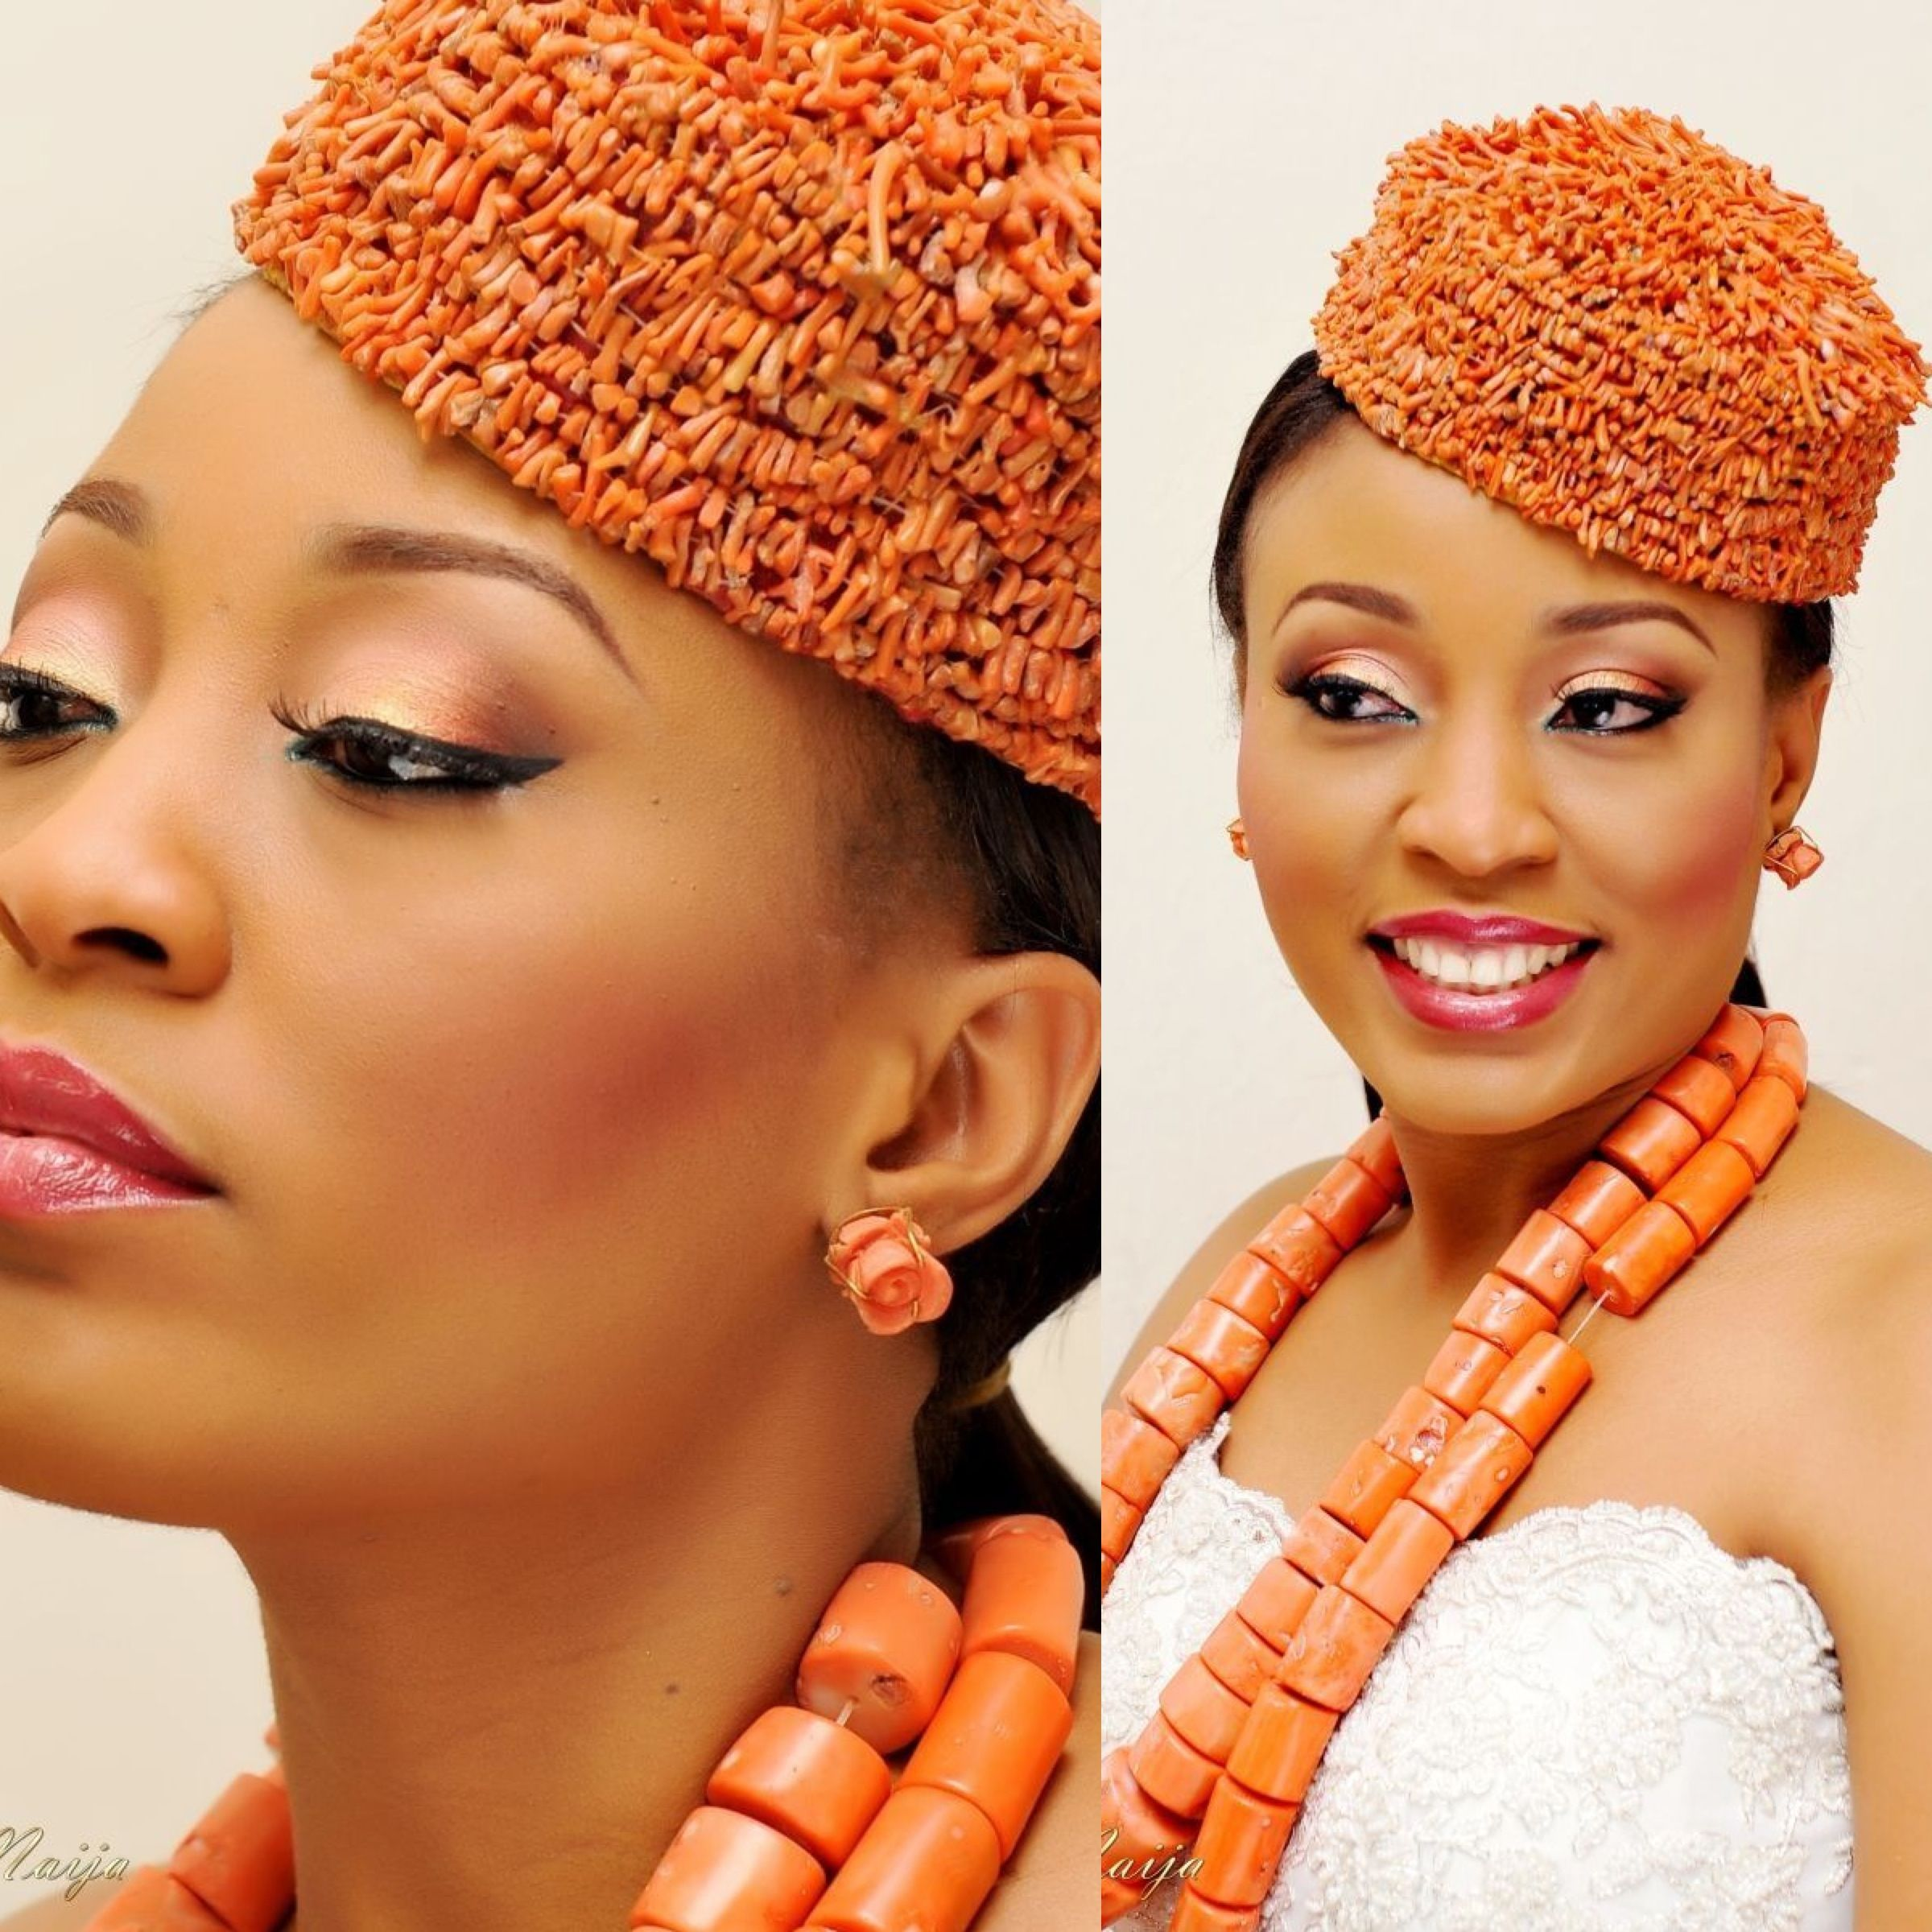 Make Up Regal Nkiru Our Bellanaijabride With Her Traditional Beads And